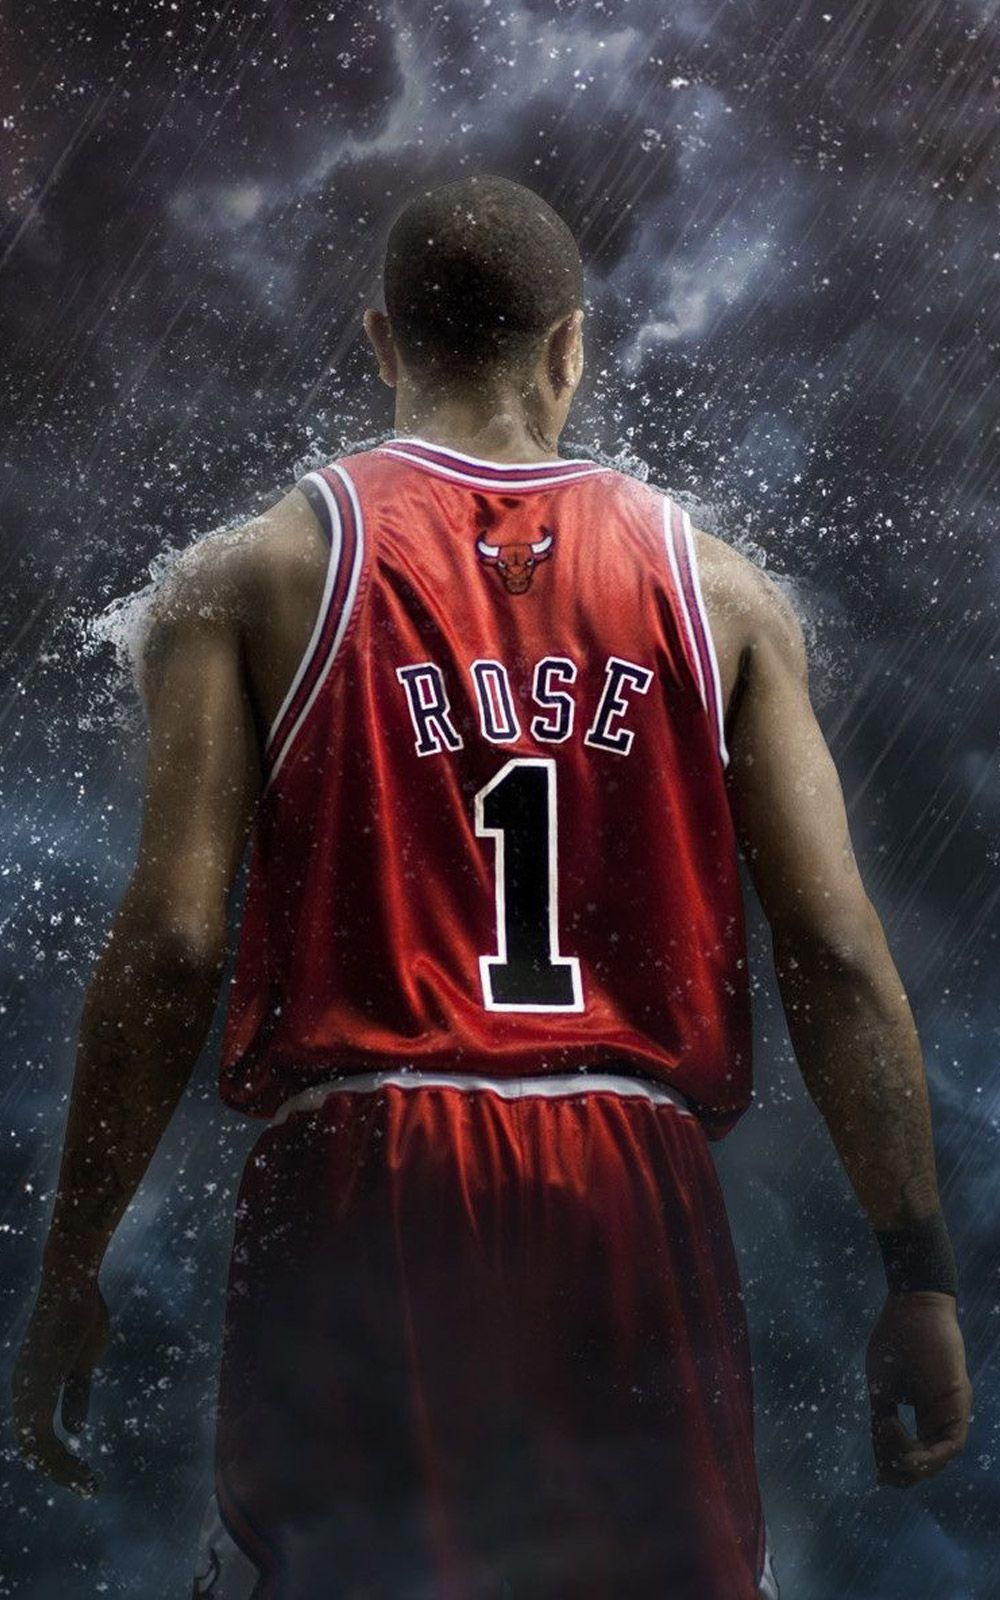 e3c8c14cf170 25 derrick rose jersey wallpaper